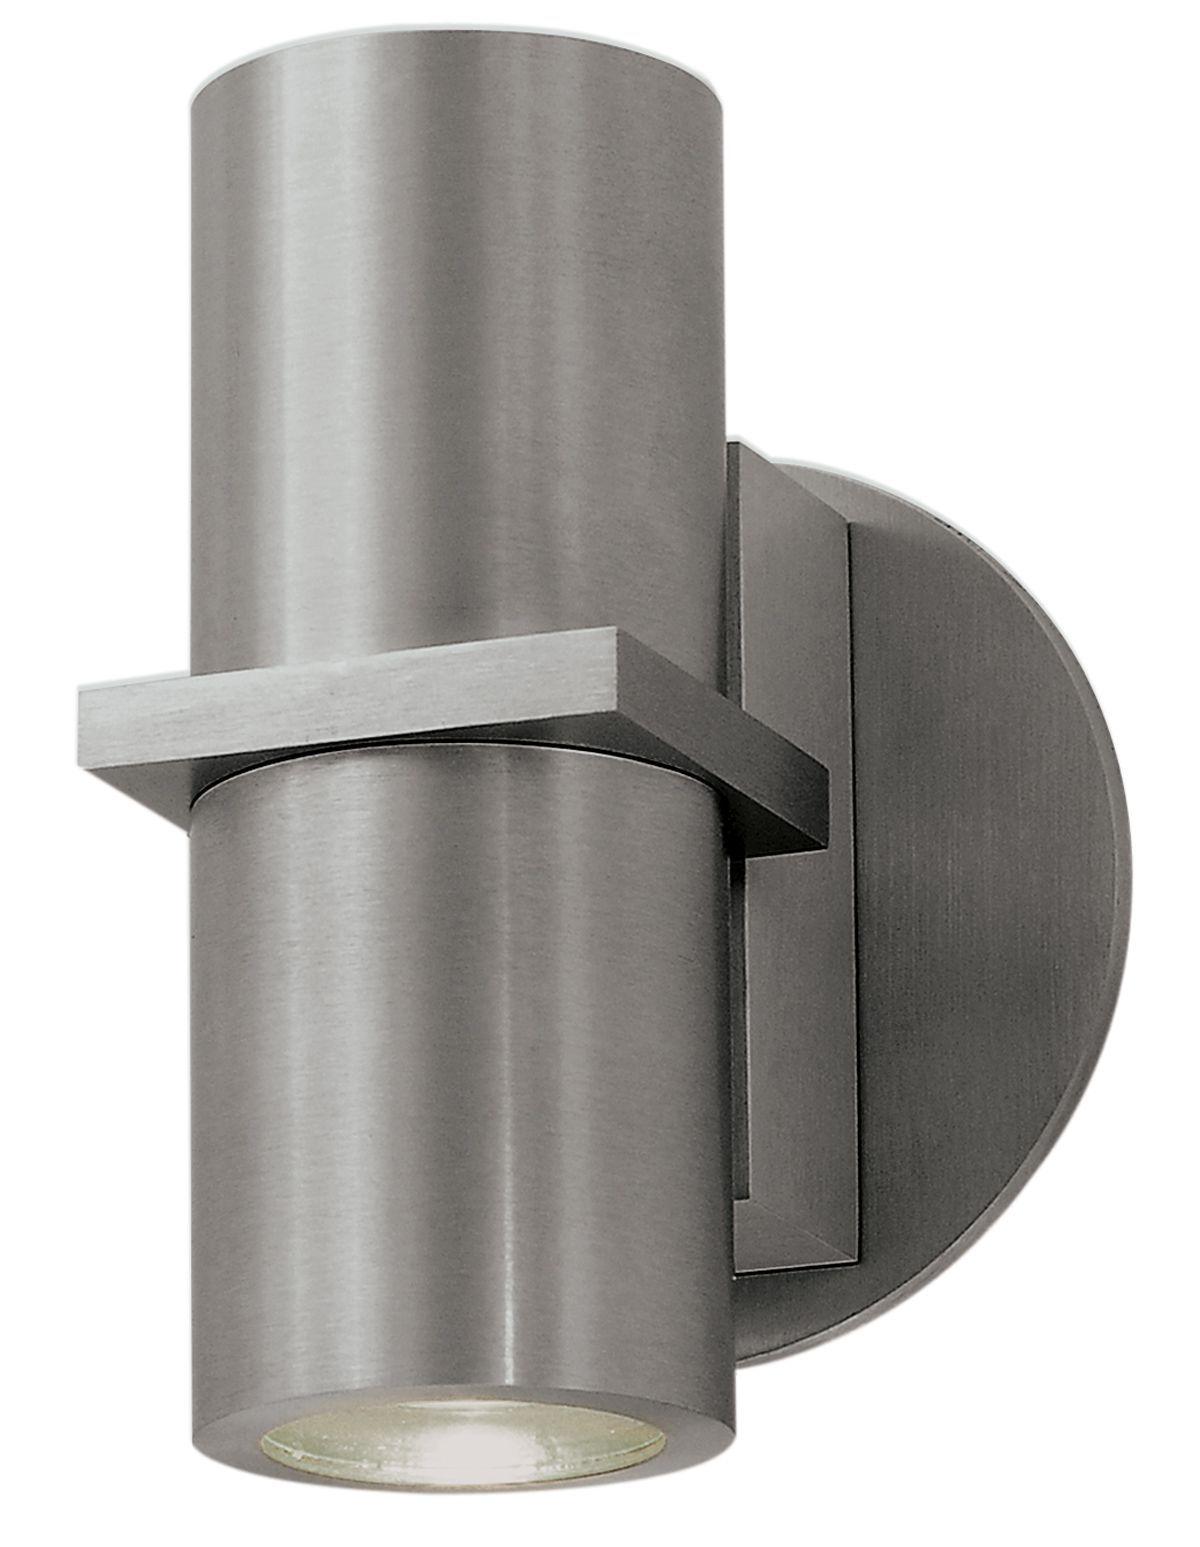 U003cpu003e Alpine Wall Sconce Features Directional Upward And Downward Light  Distribution And Can Be